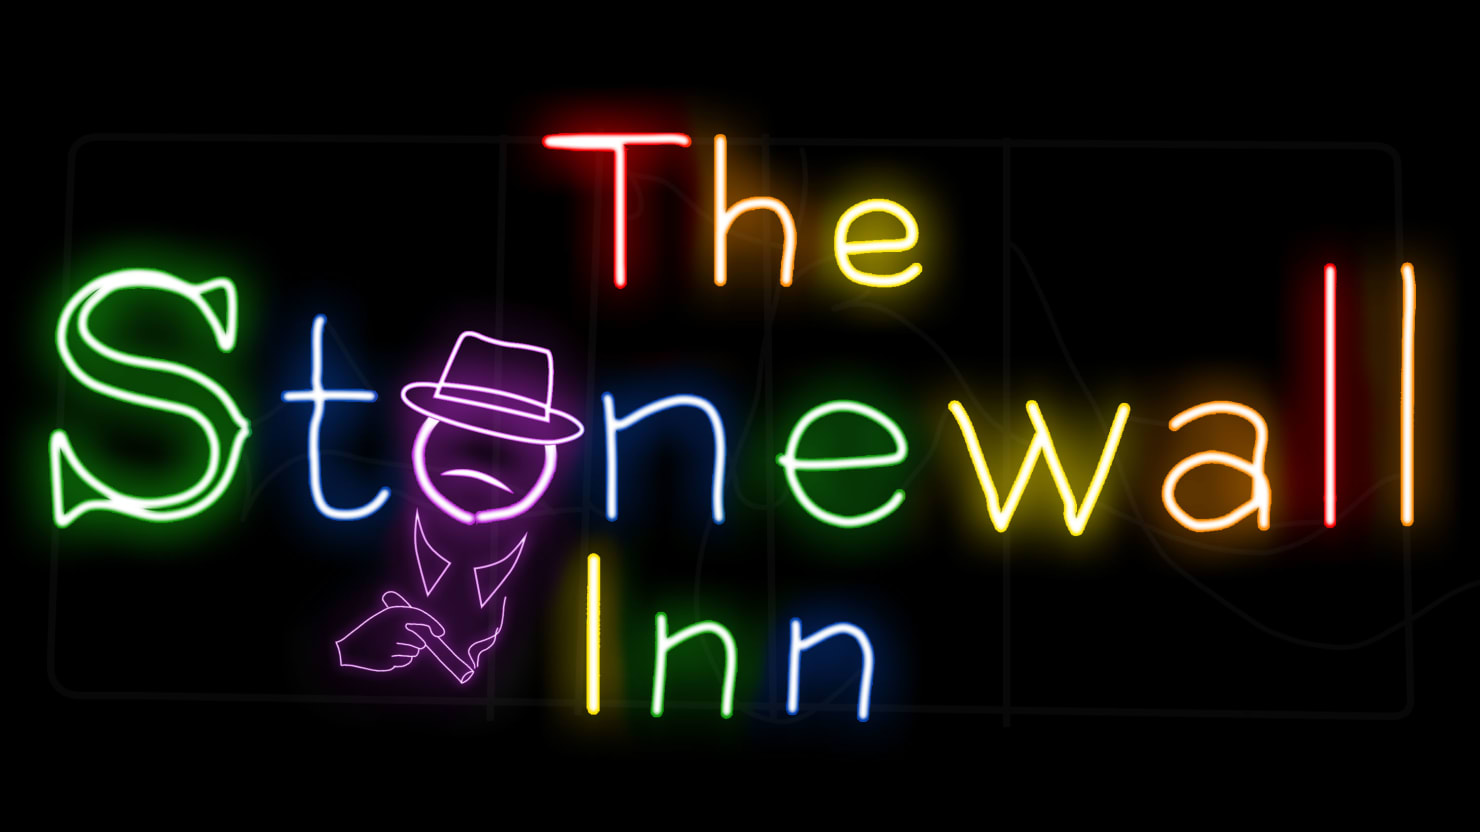 How the Mafia Muscled in and Controlled the Stonewall Inn